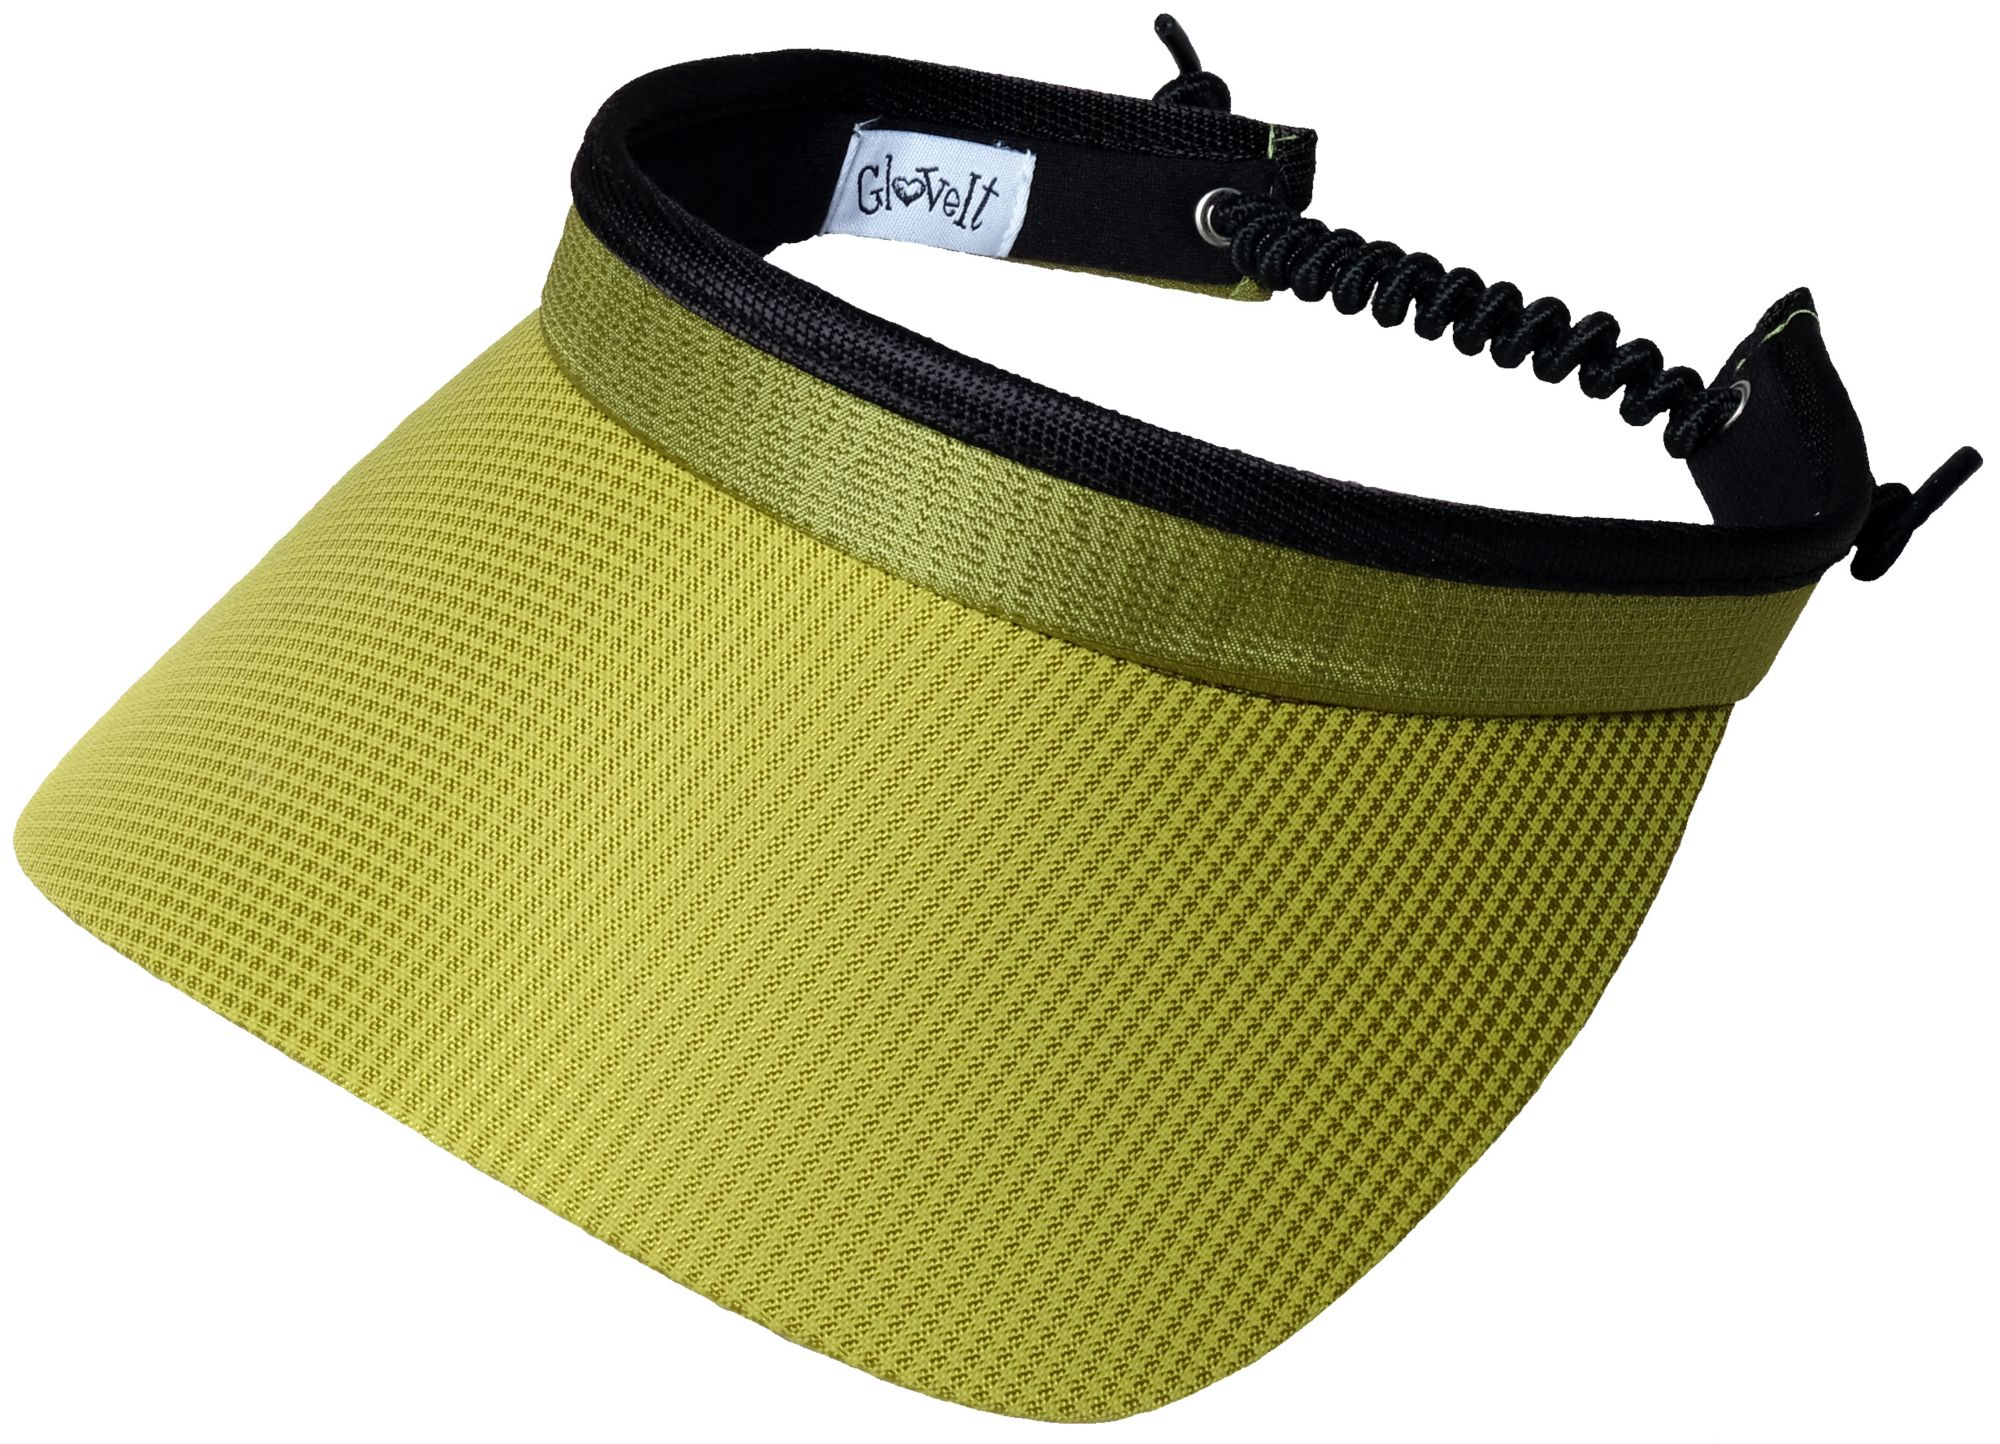 Glove It Women's Printed Coil Golf Visor, Size: One size, Green thumbnail